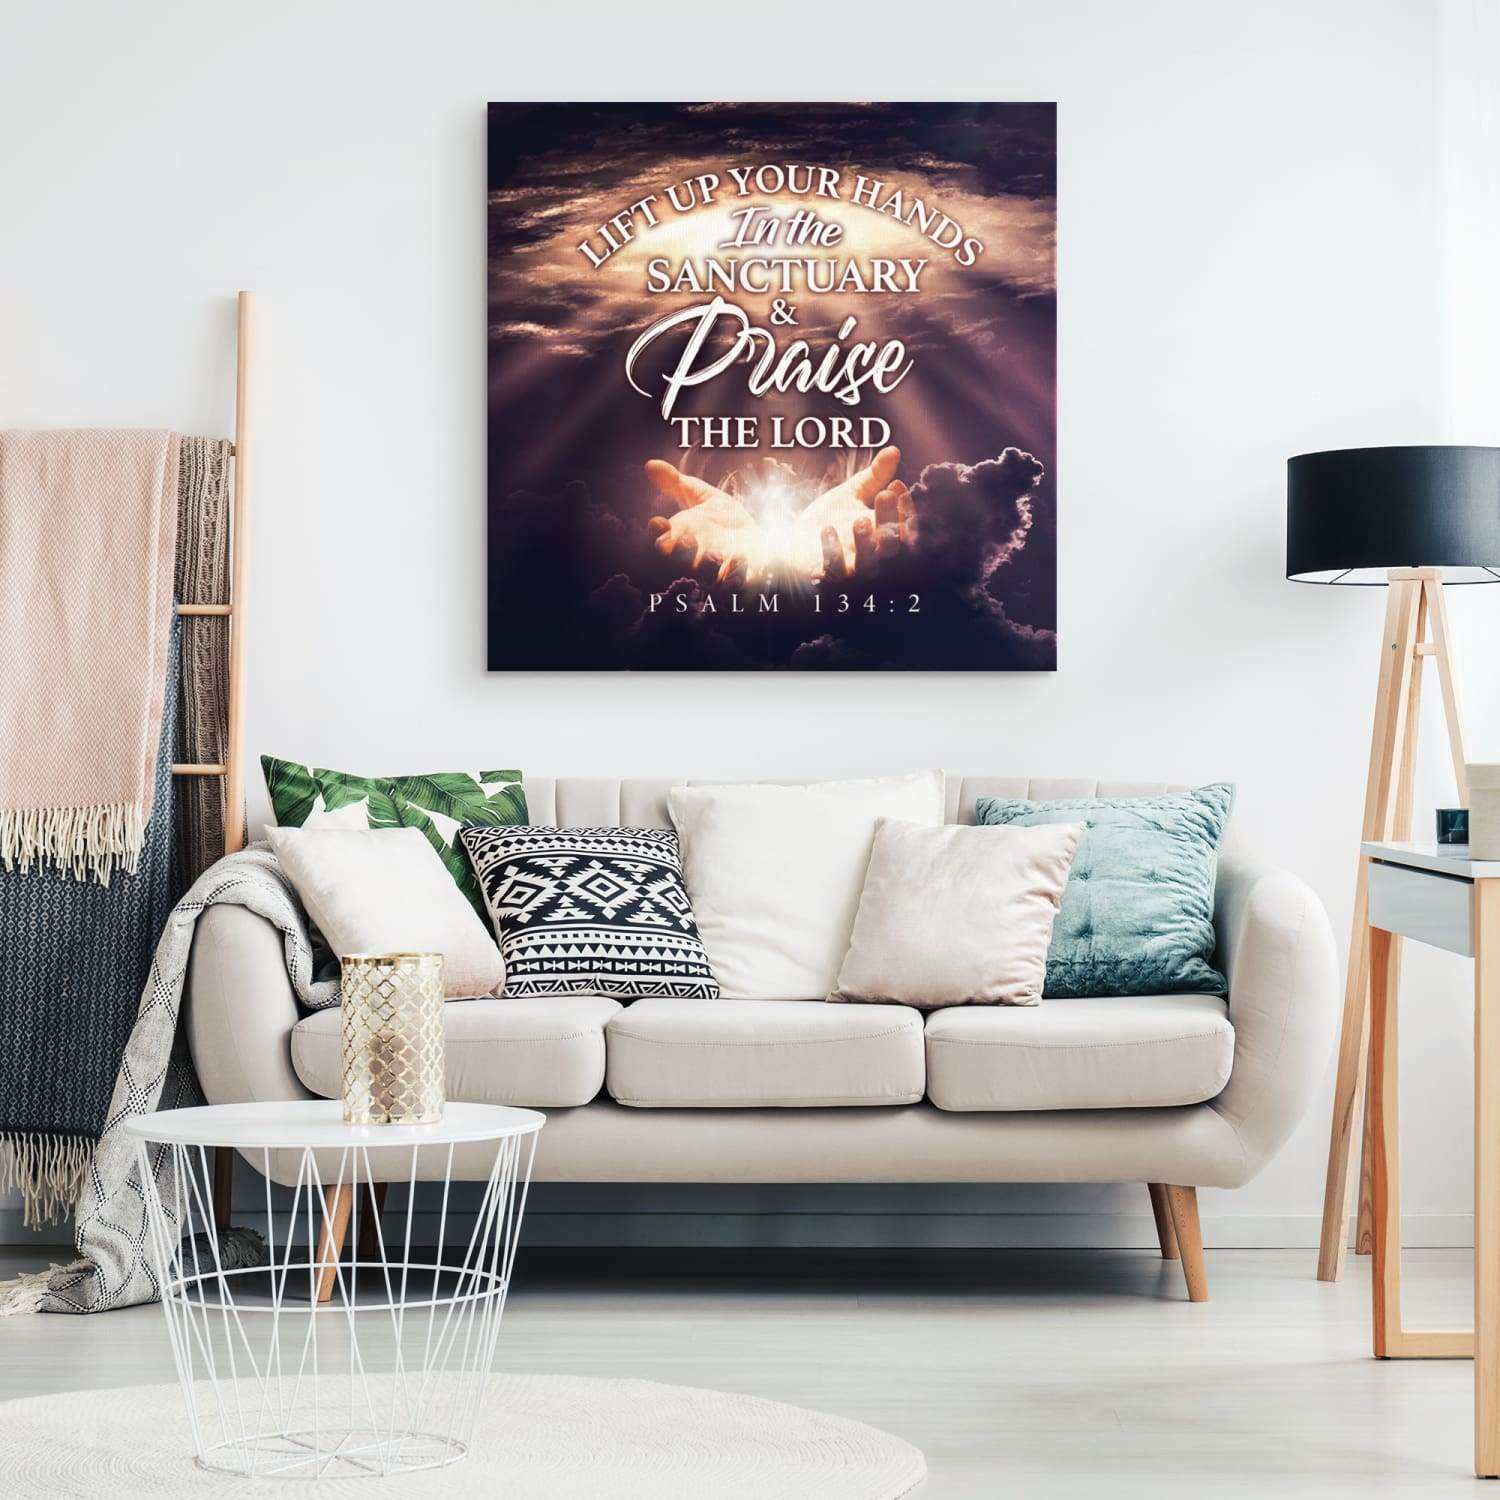 Psalm 134:2 Lift up your hands in the sanctuary and praise the Lord canvas wall art - Square - GnWarriors Clothing